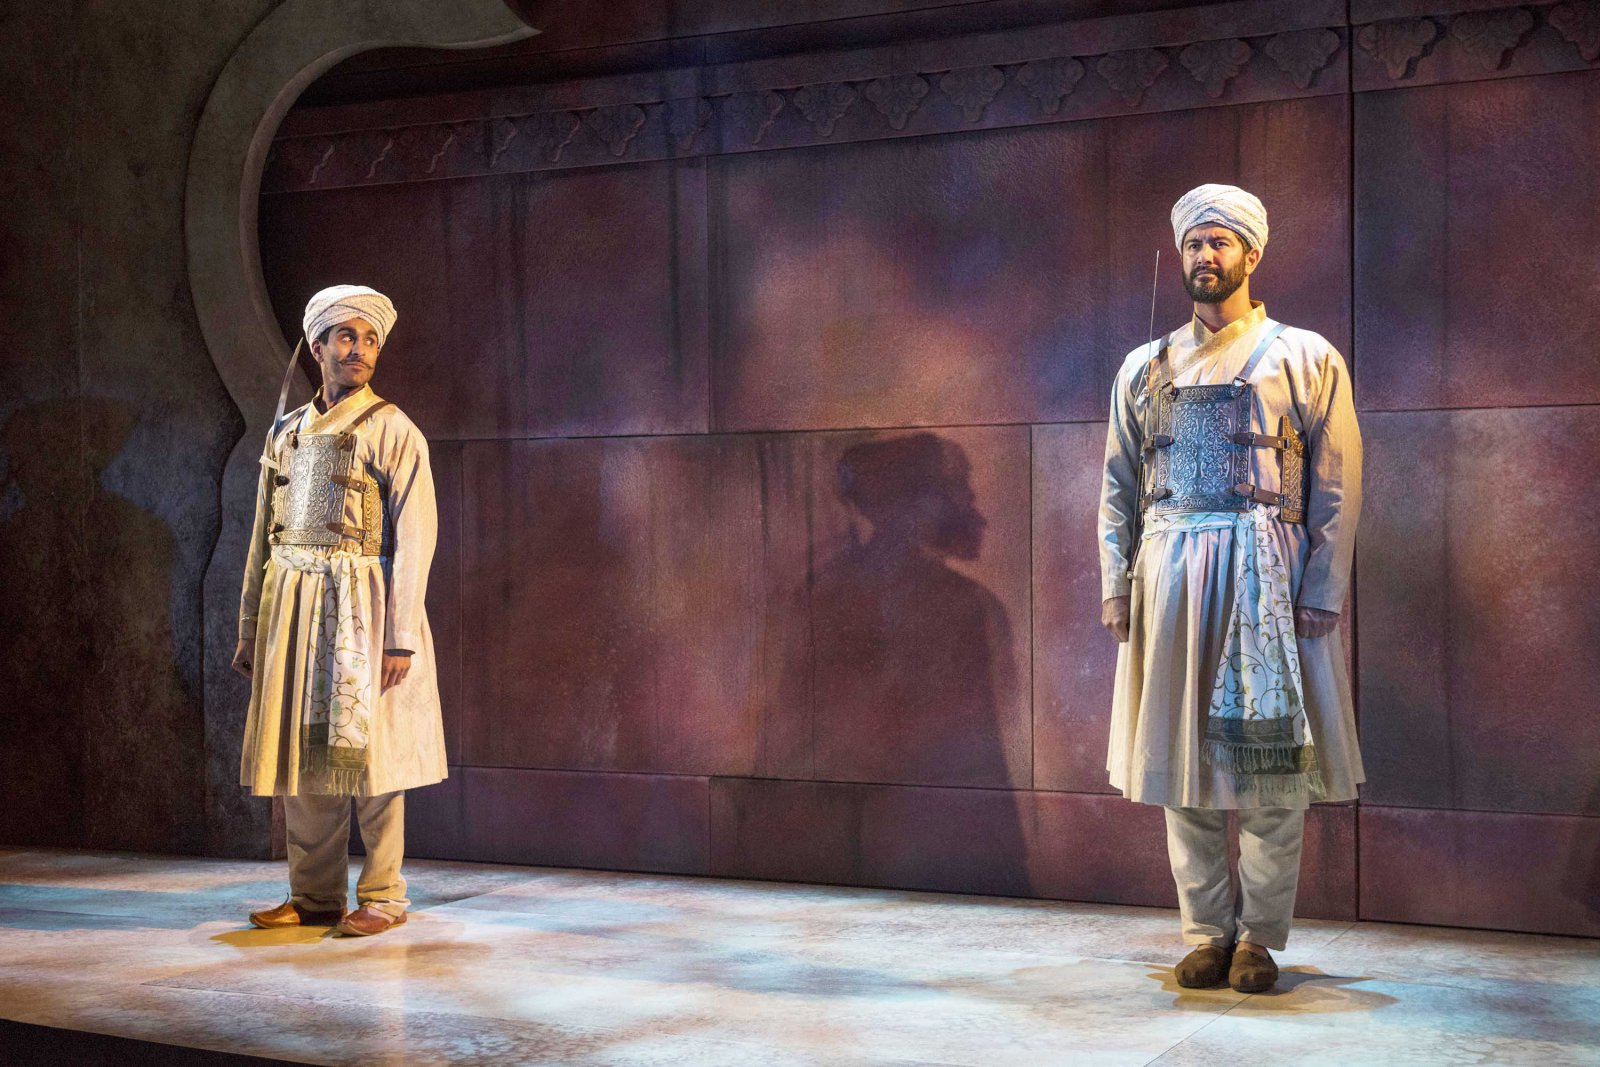 Milwaukee Repertory Theater presents Guards at the Taj  in the Stiemke Studio September 26 – November 4, 2018. Left to Right: Owa'Aìs Azeem and Yousof Sultani